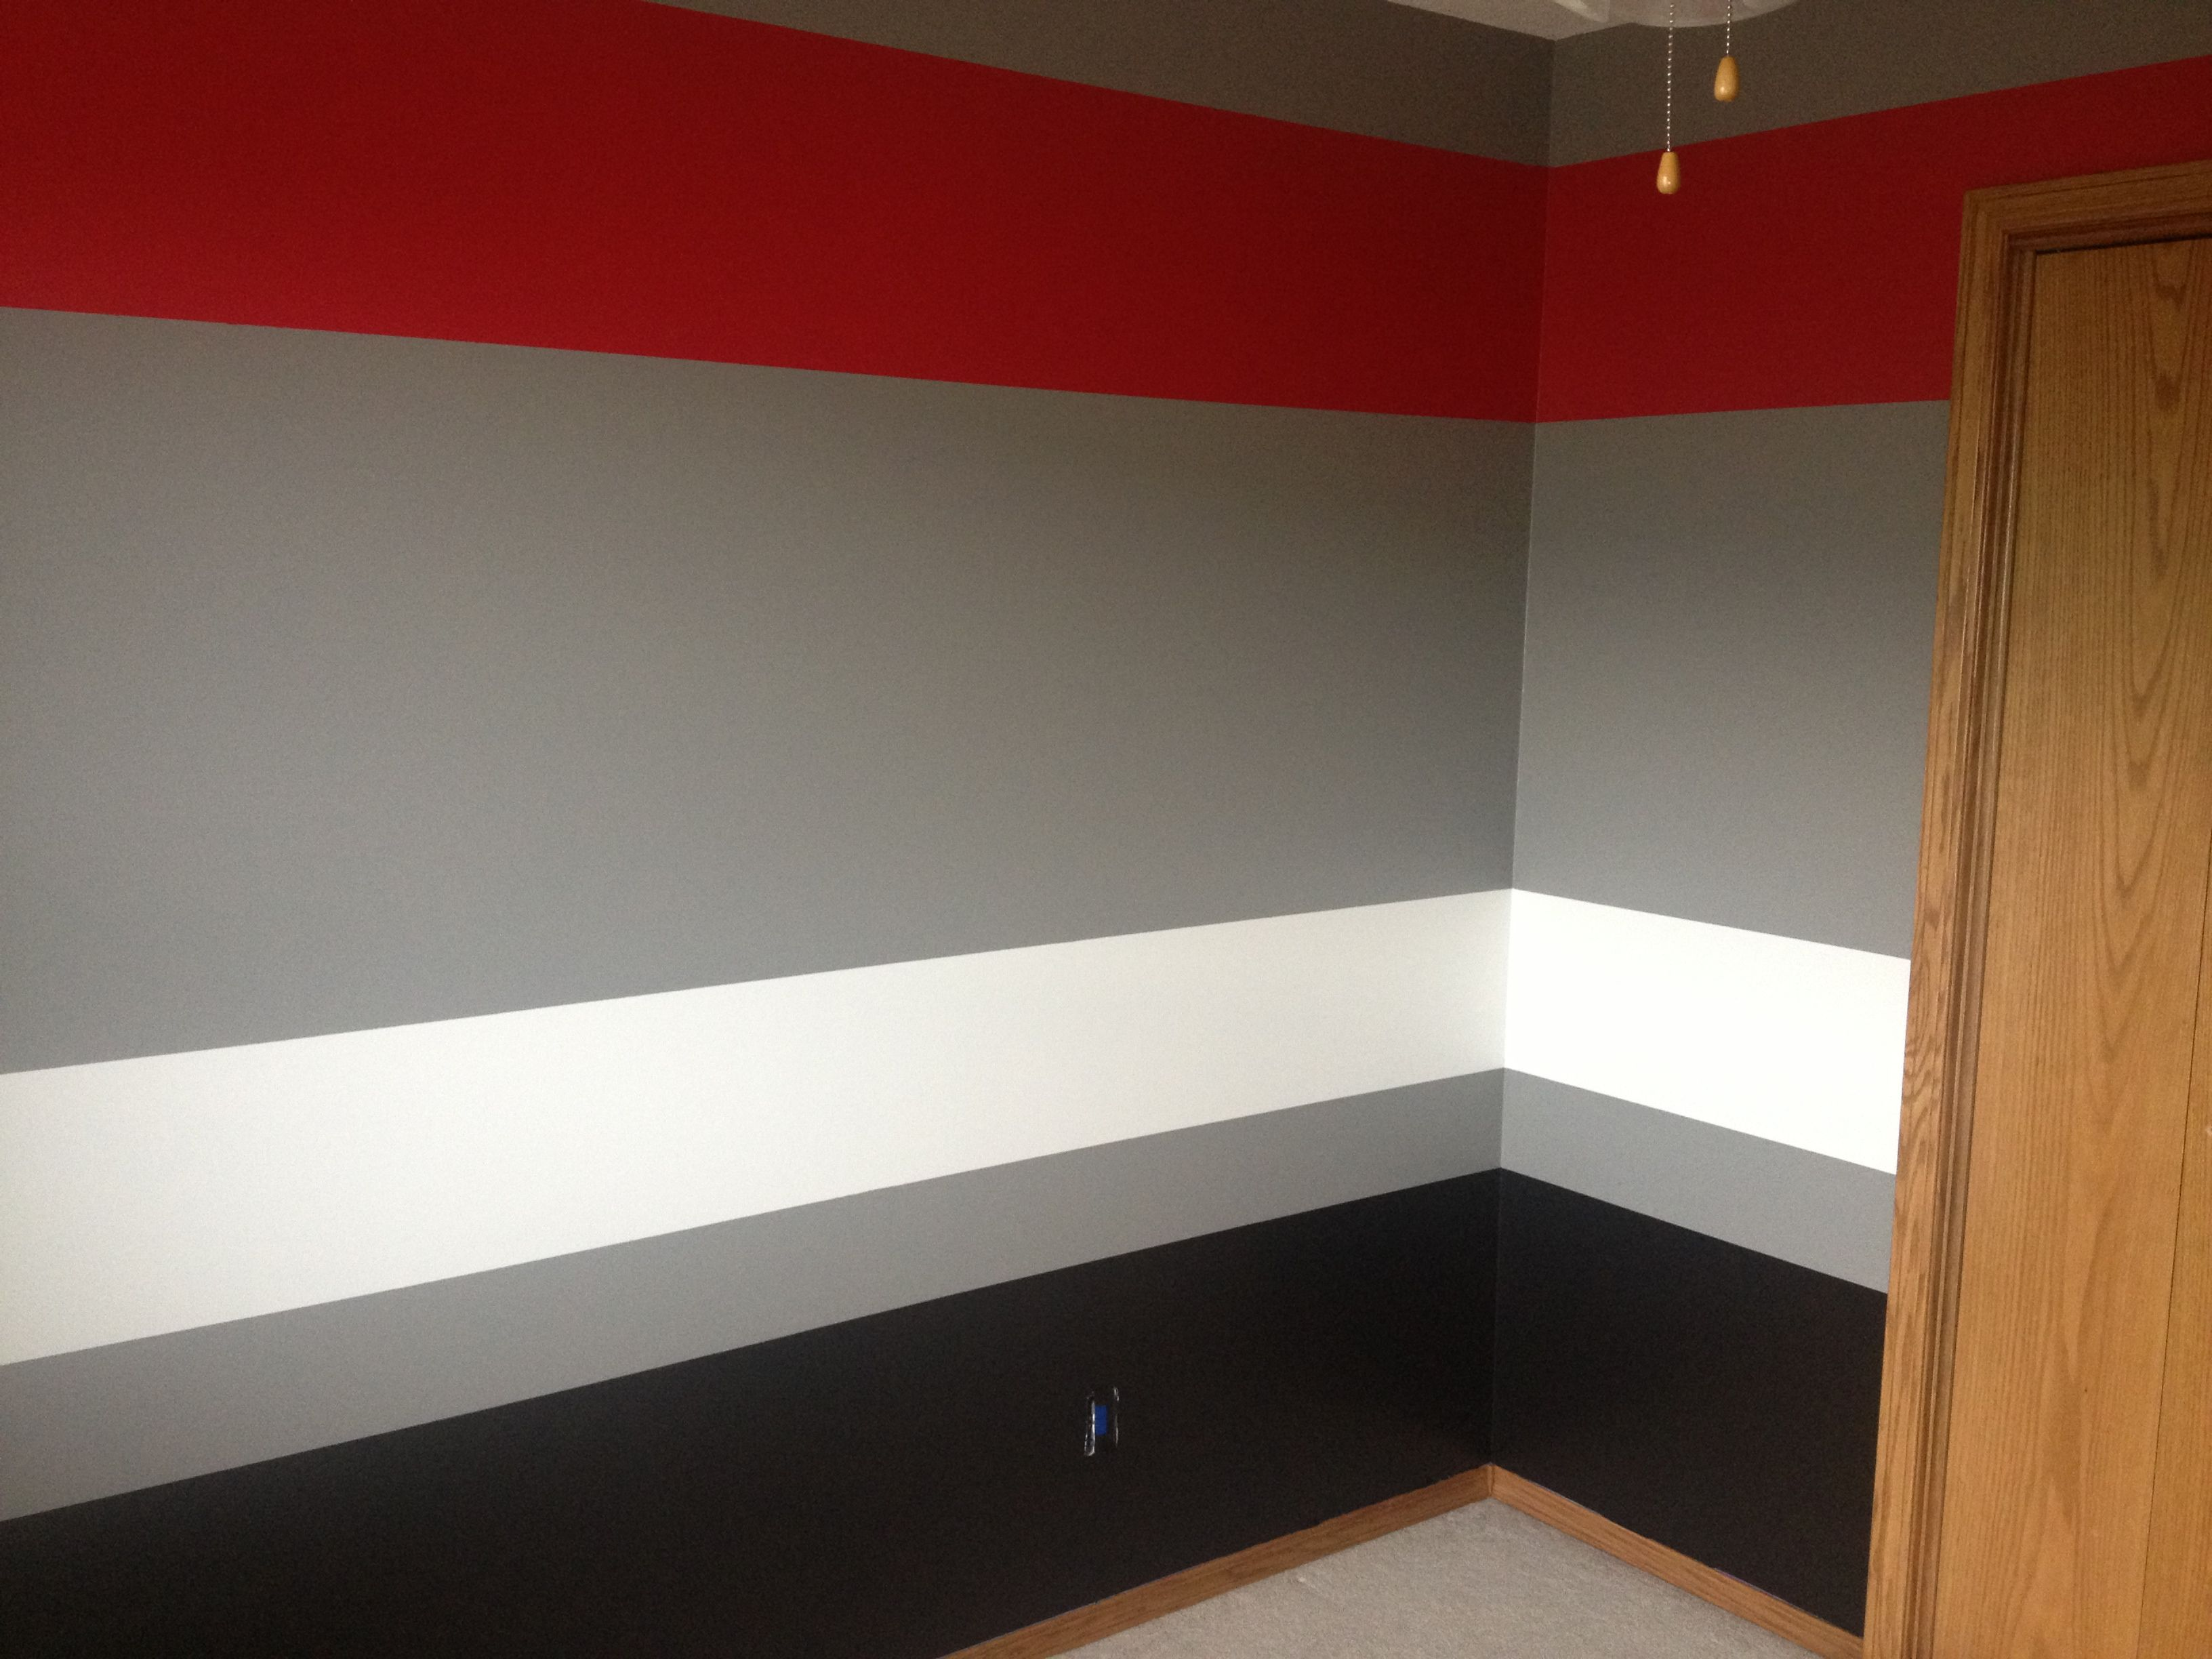 painted room grey, red, white, black rooms boy room paint, teenpainted room grey, red, white, black